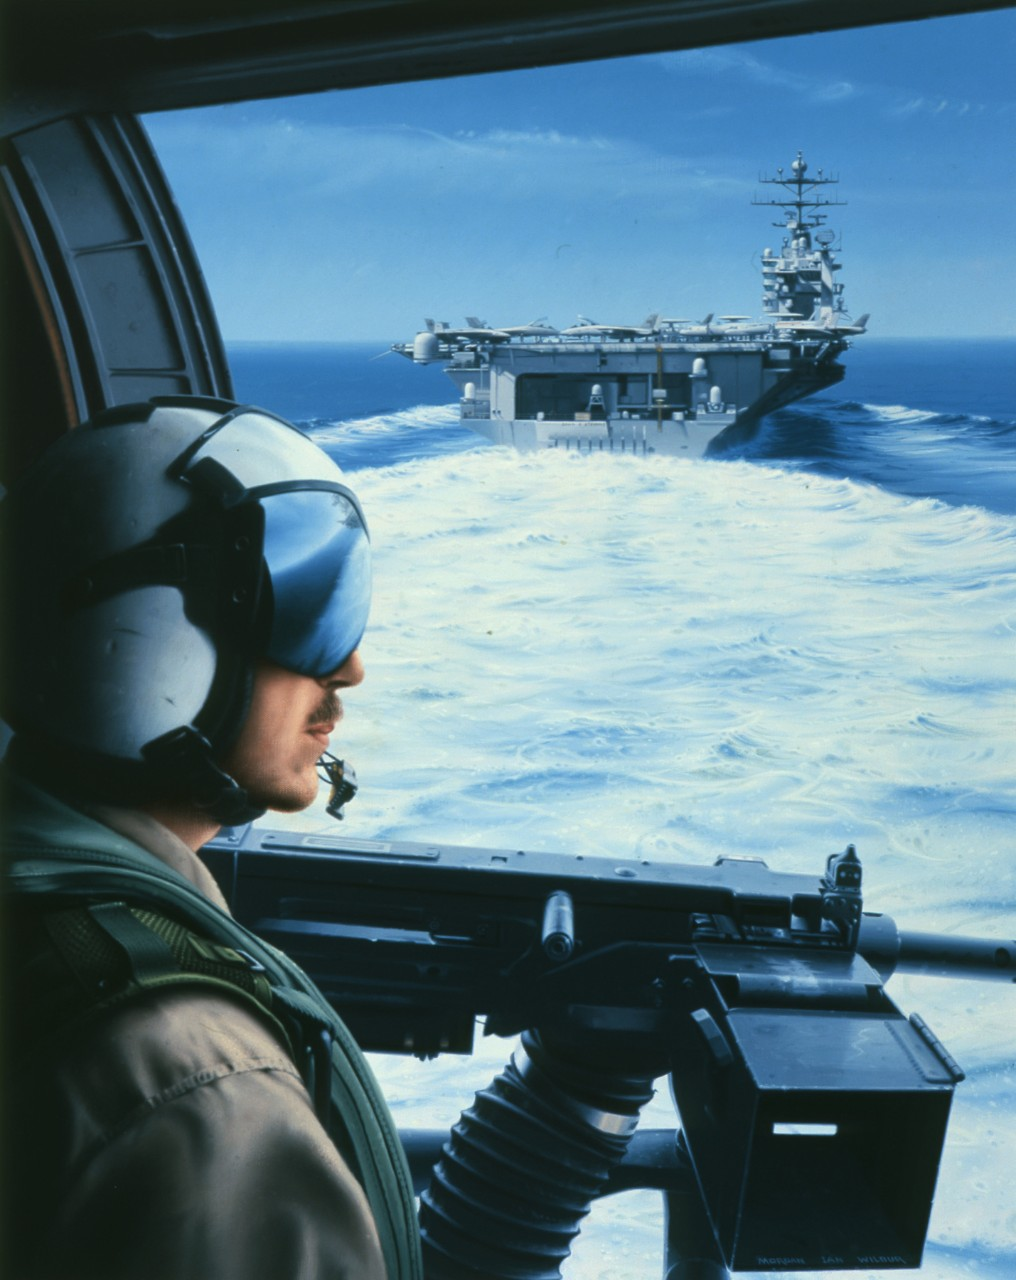 A crewman looks out the hatch of a helicopter, he is looking at the stern of an aircraft carrier